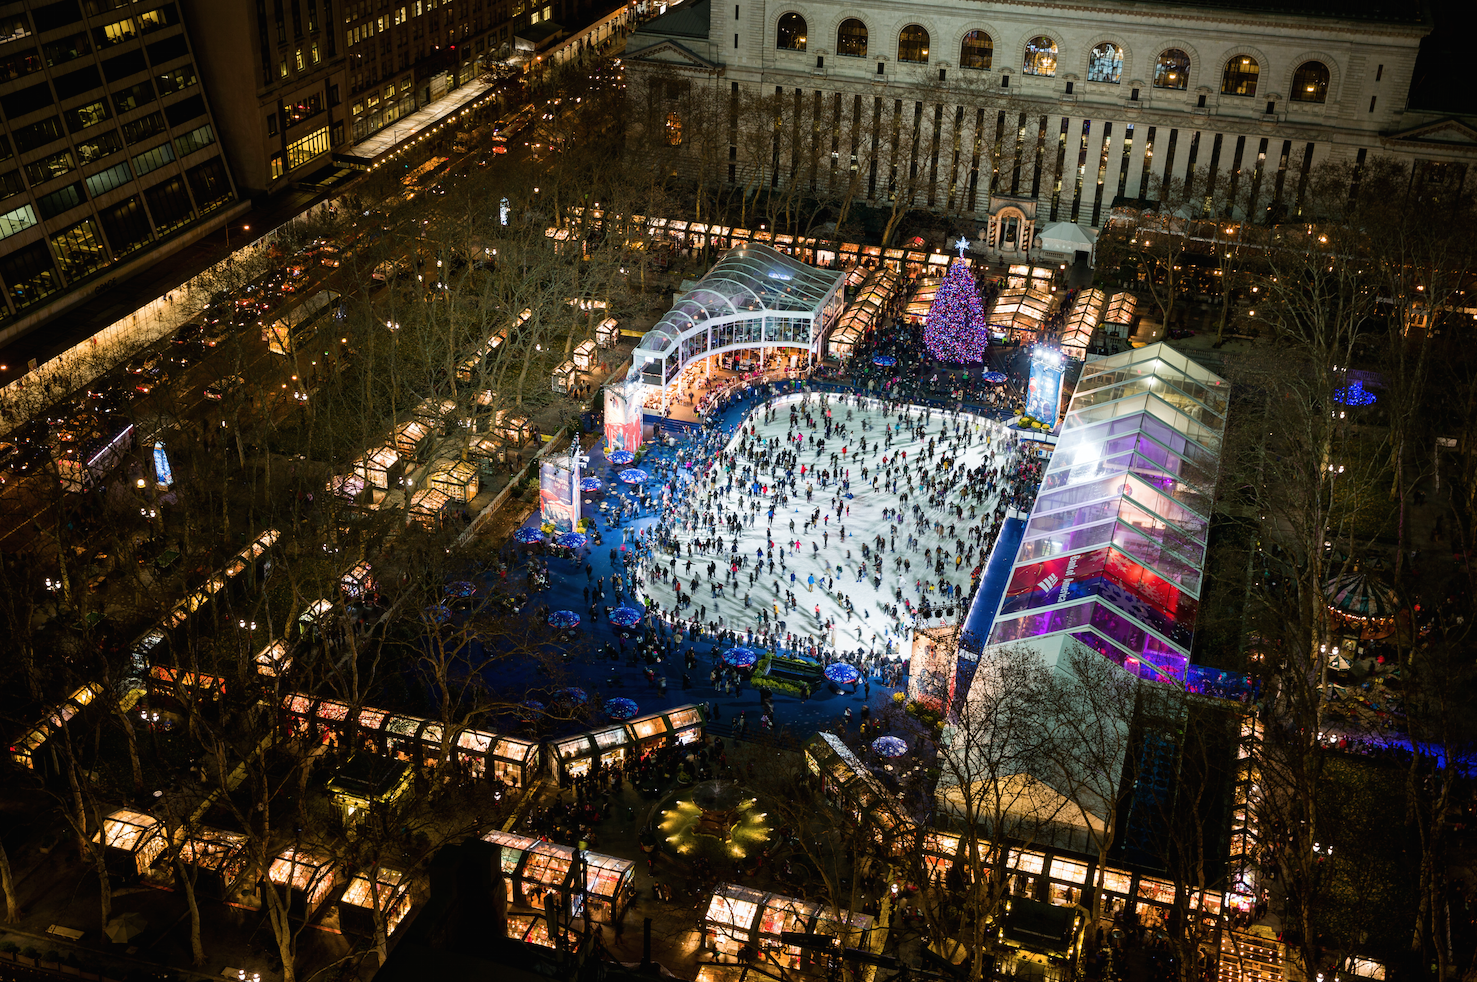 The Bank of America Winter Village at Bryant Park will open before Halloween